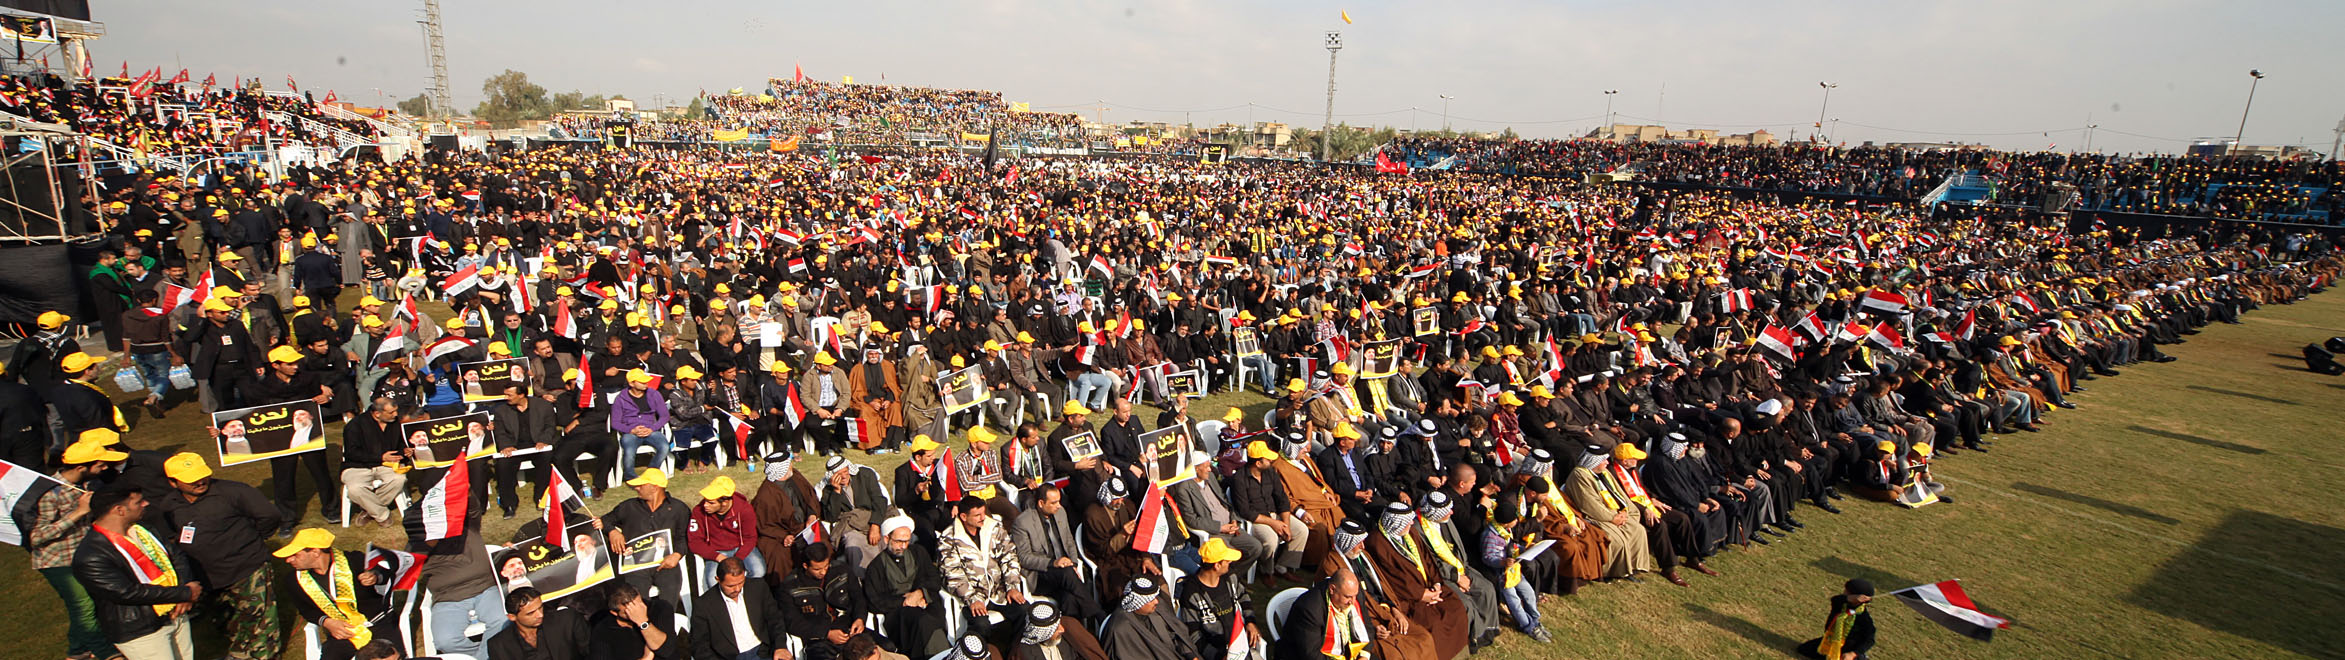 """Photo of Sayyid Ammar al-Hakim: """"We are followers of Hussain not just by name but by spirit"""